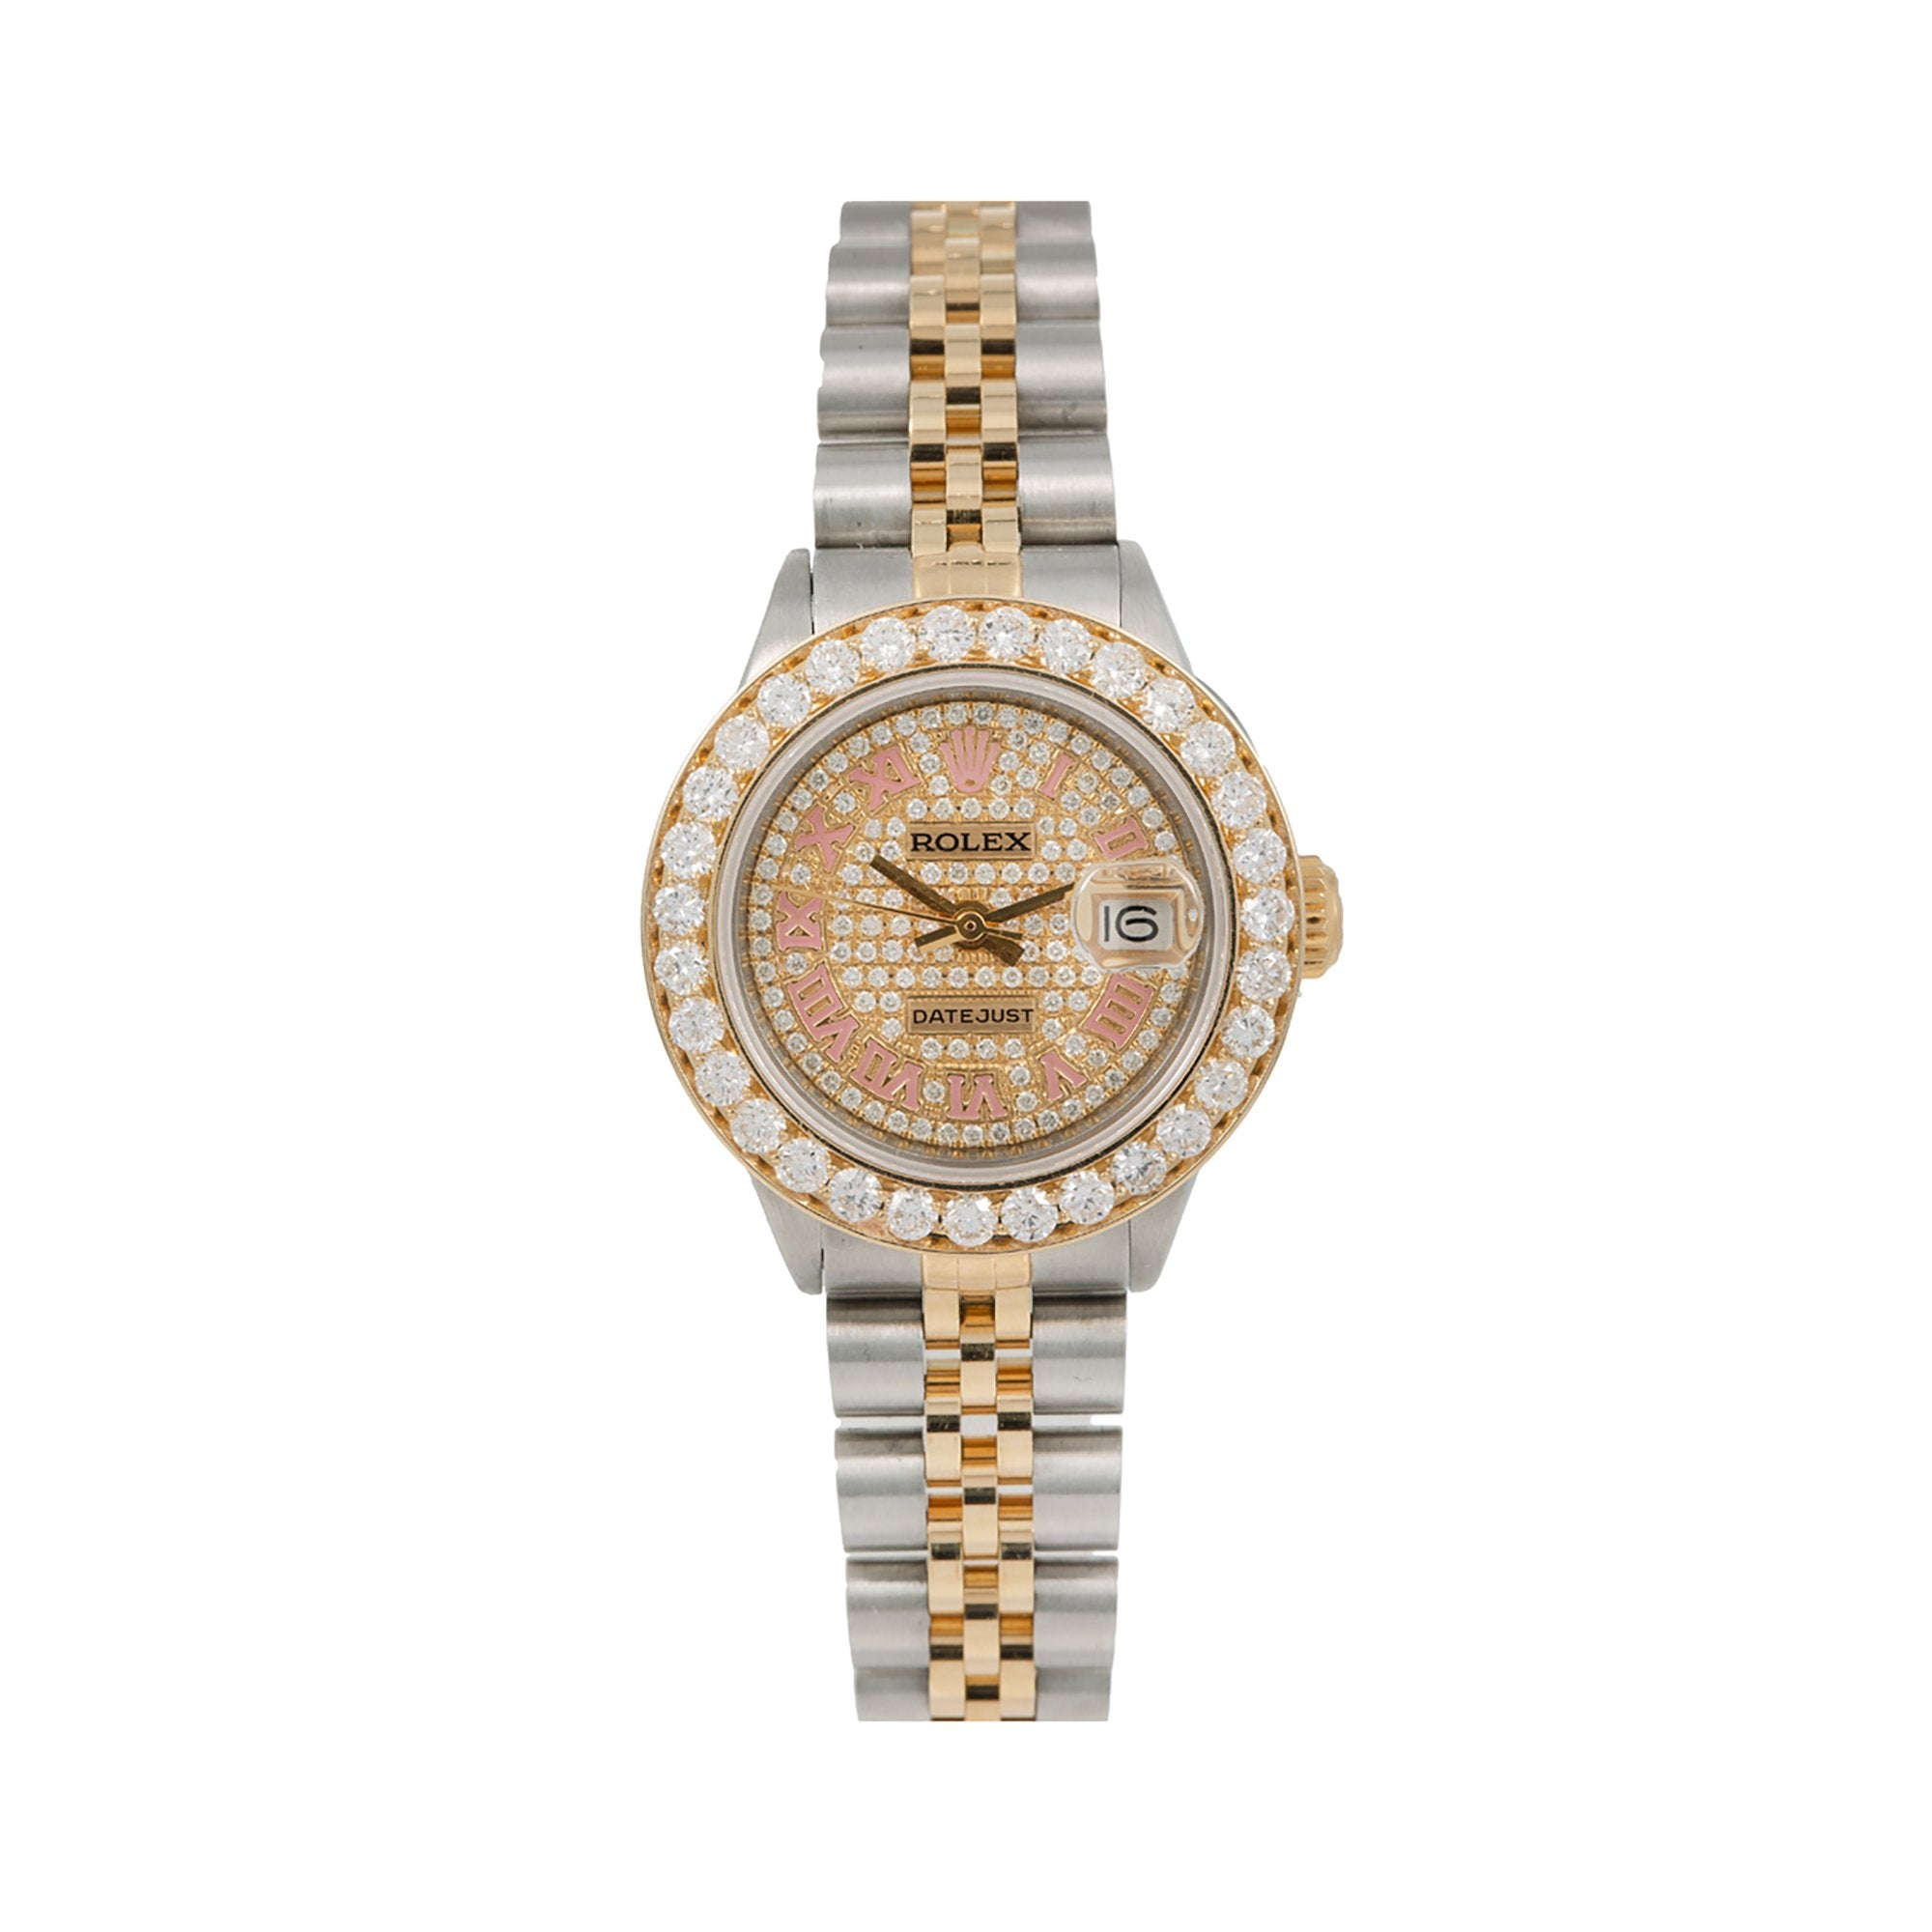 Rolex Datejust Diamond Watch, 6917 26mm, Champagne Diamond Dial With 3.45 CT Diamonds